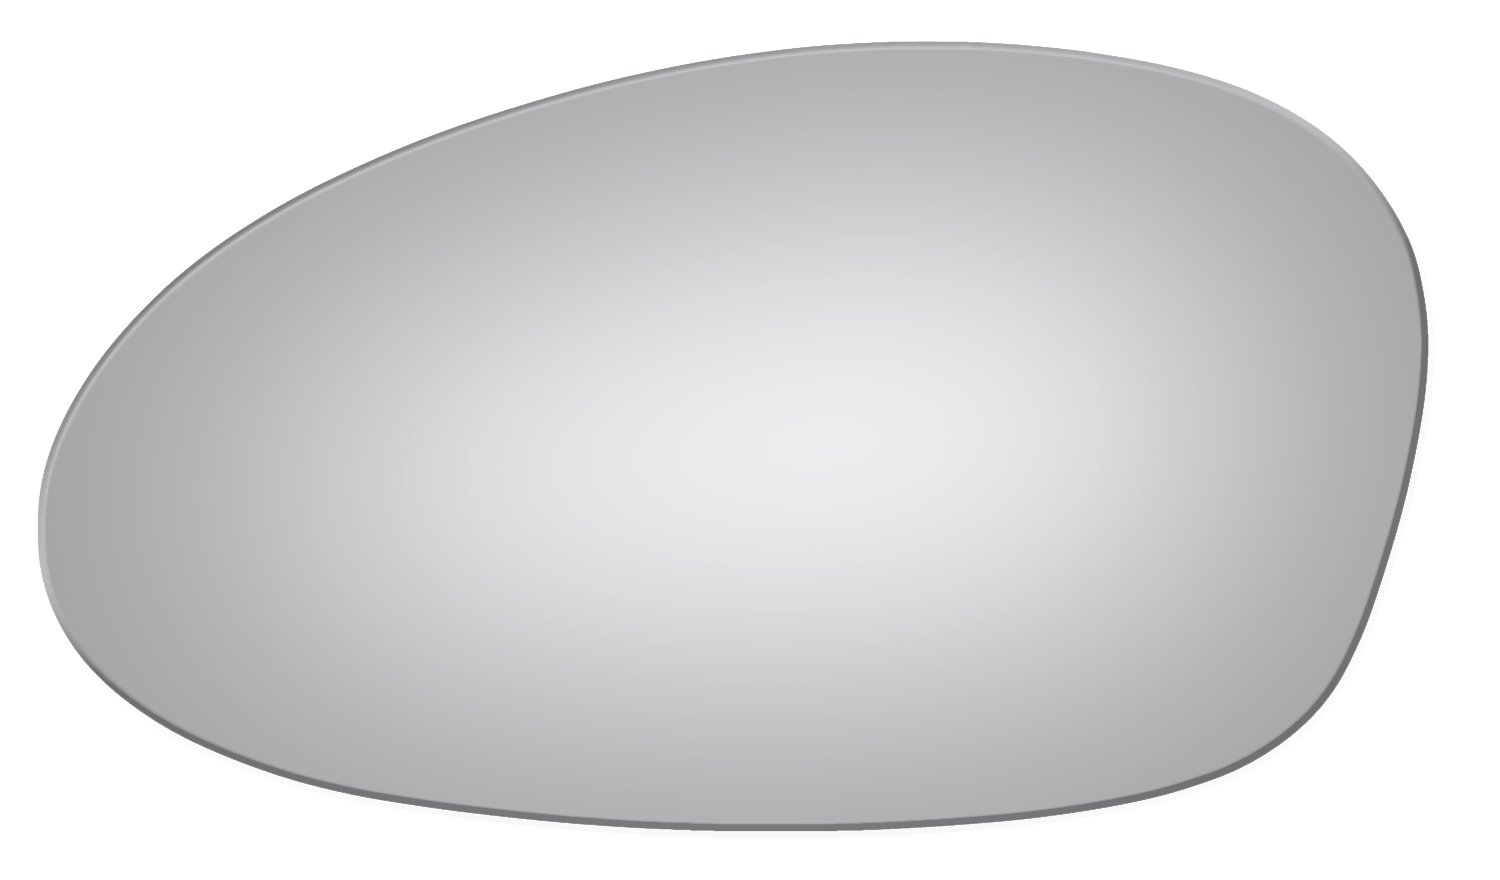 325xi Burco 4074 Flat Driver Side Power Replacement Mirror Glass 2006-2009 BMW 323i 330i Mount Not Included for 2006 BMW 325i See Full Fitment List In Description 330xi